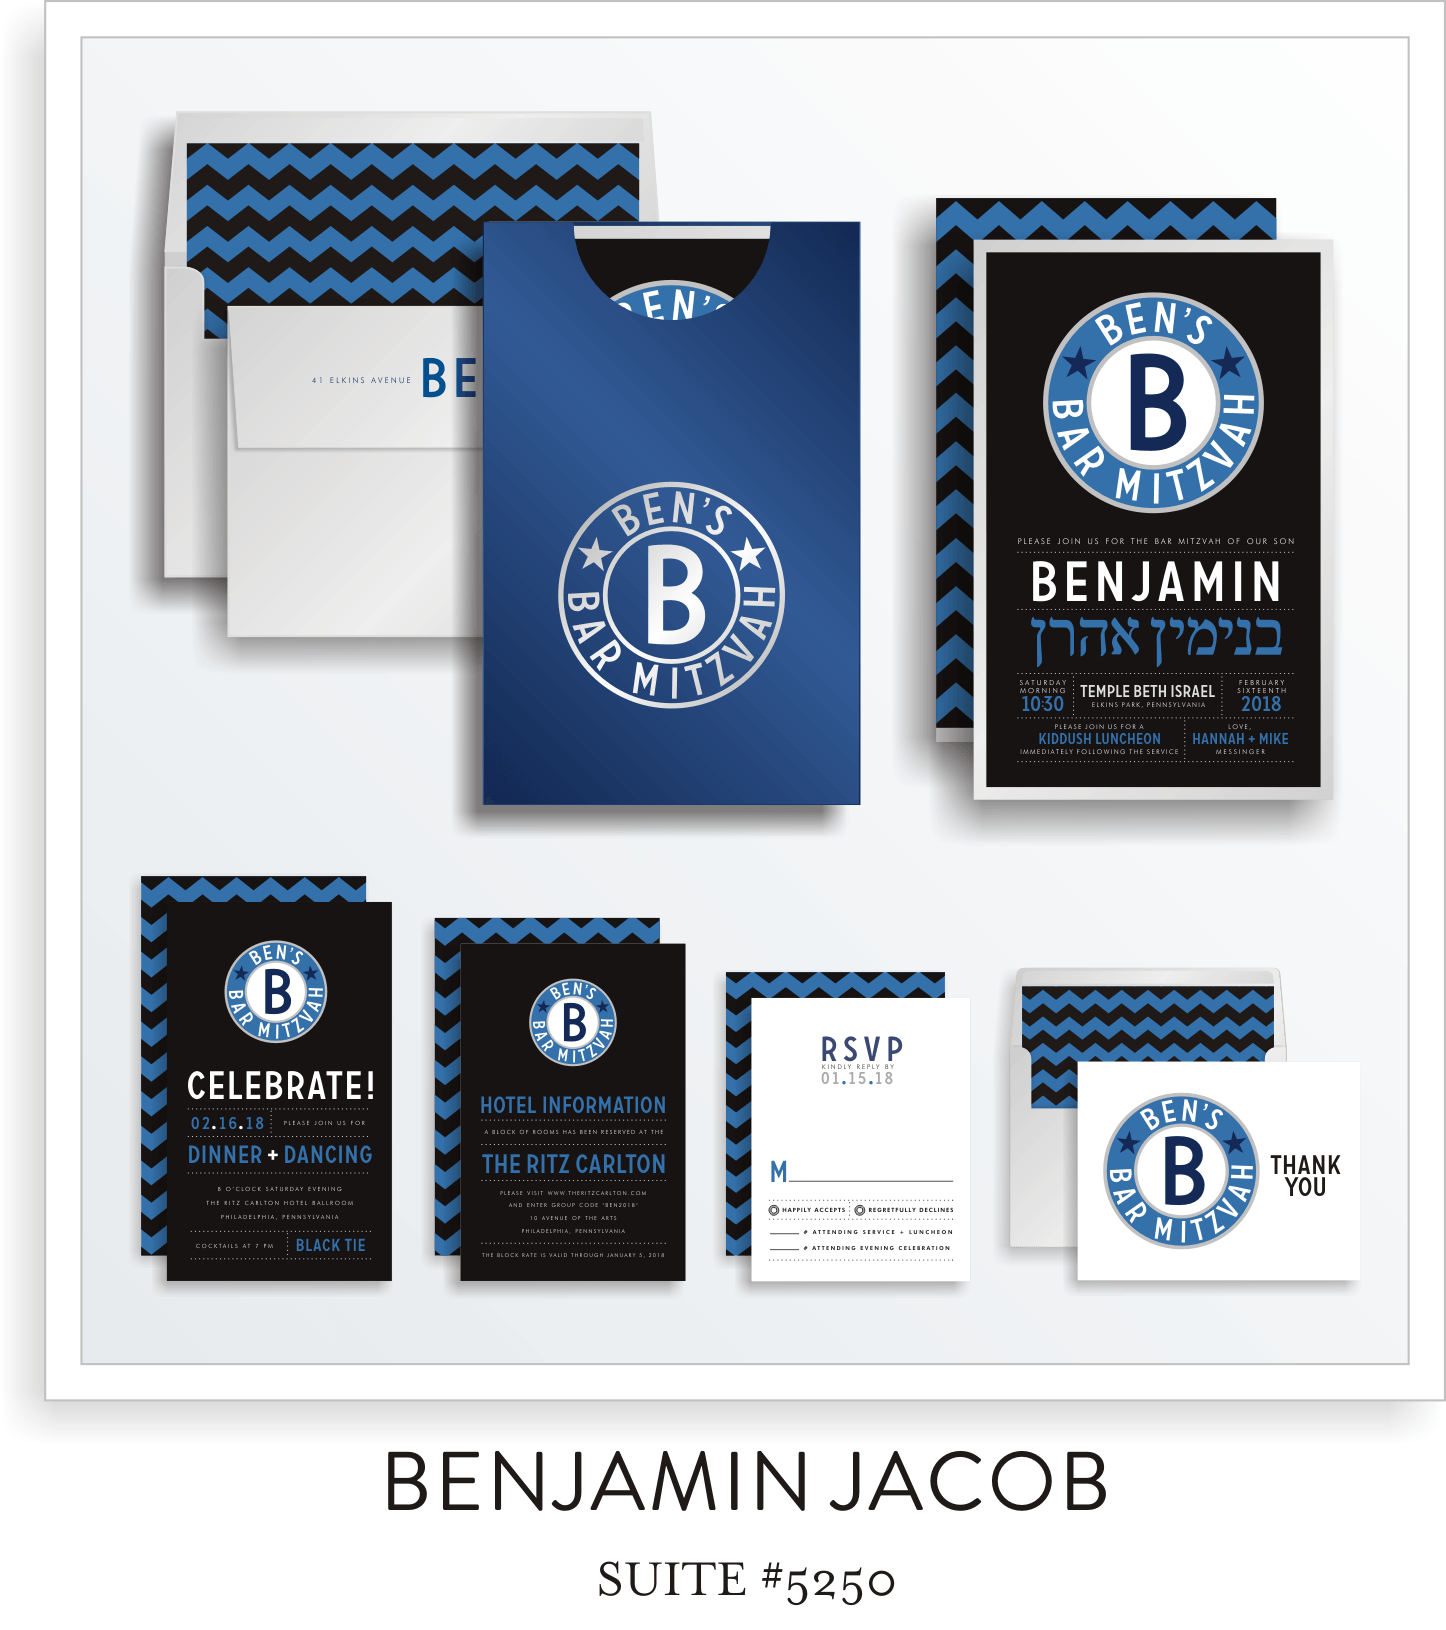 Copy of Copy of <a href=/bar-mitzvah-invitations-5250>Suite Details→</a><strong><a href=/jacob-adam-in-colors>see more colors→</a></strong>